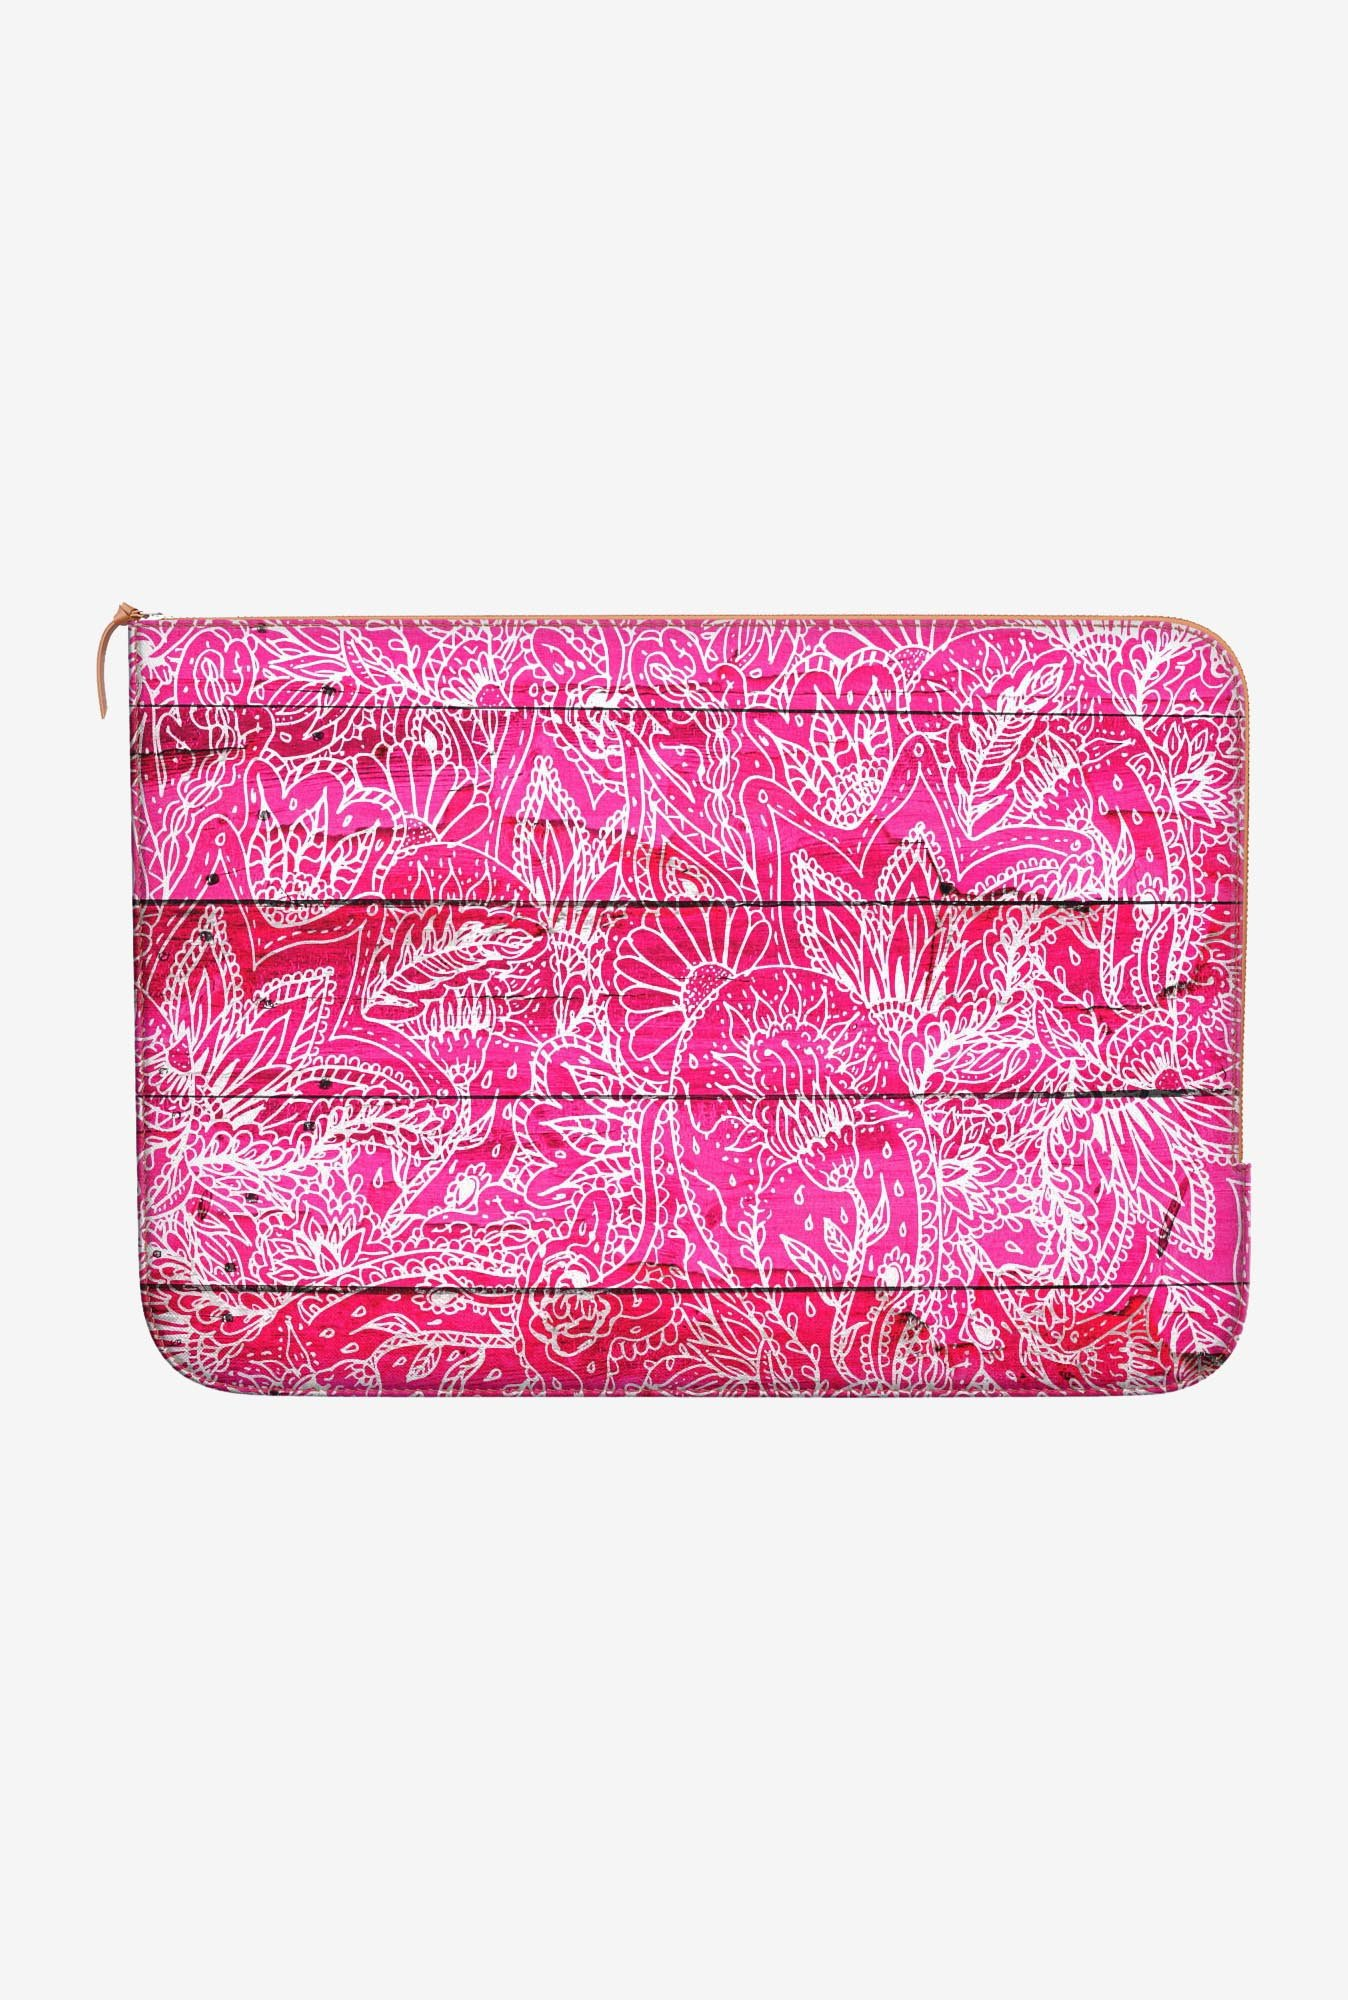 DailyObjects Floral Paisley MacBook Air 13 Zippered Sleeve